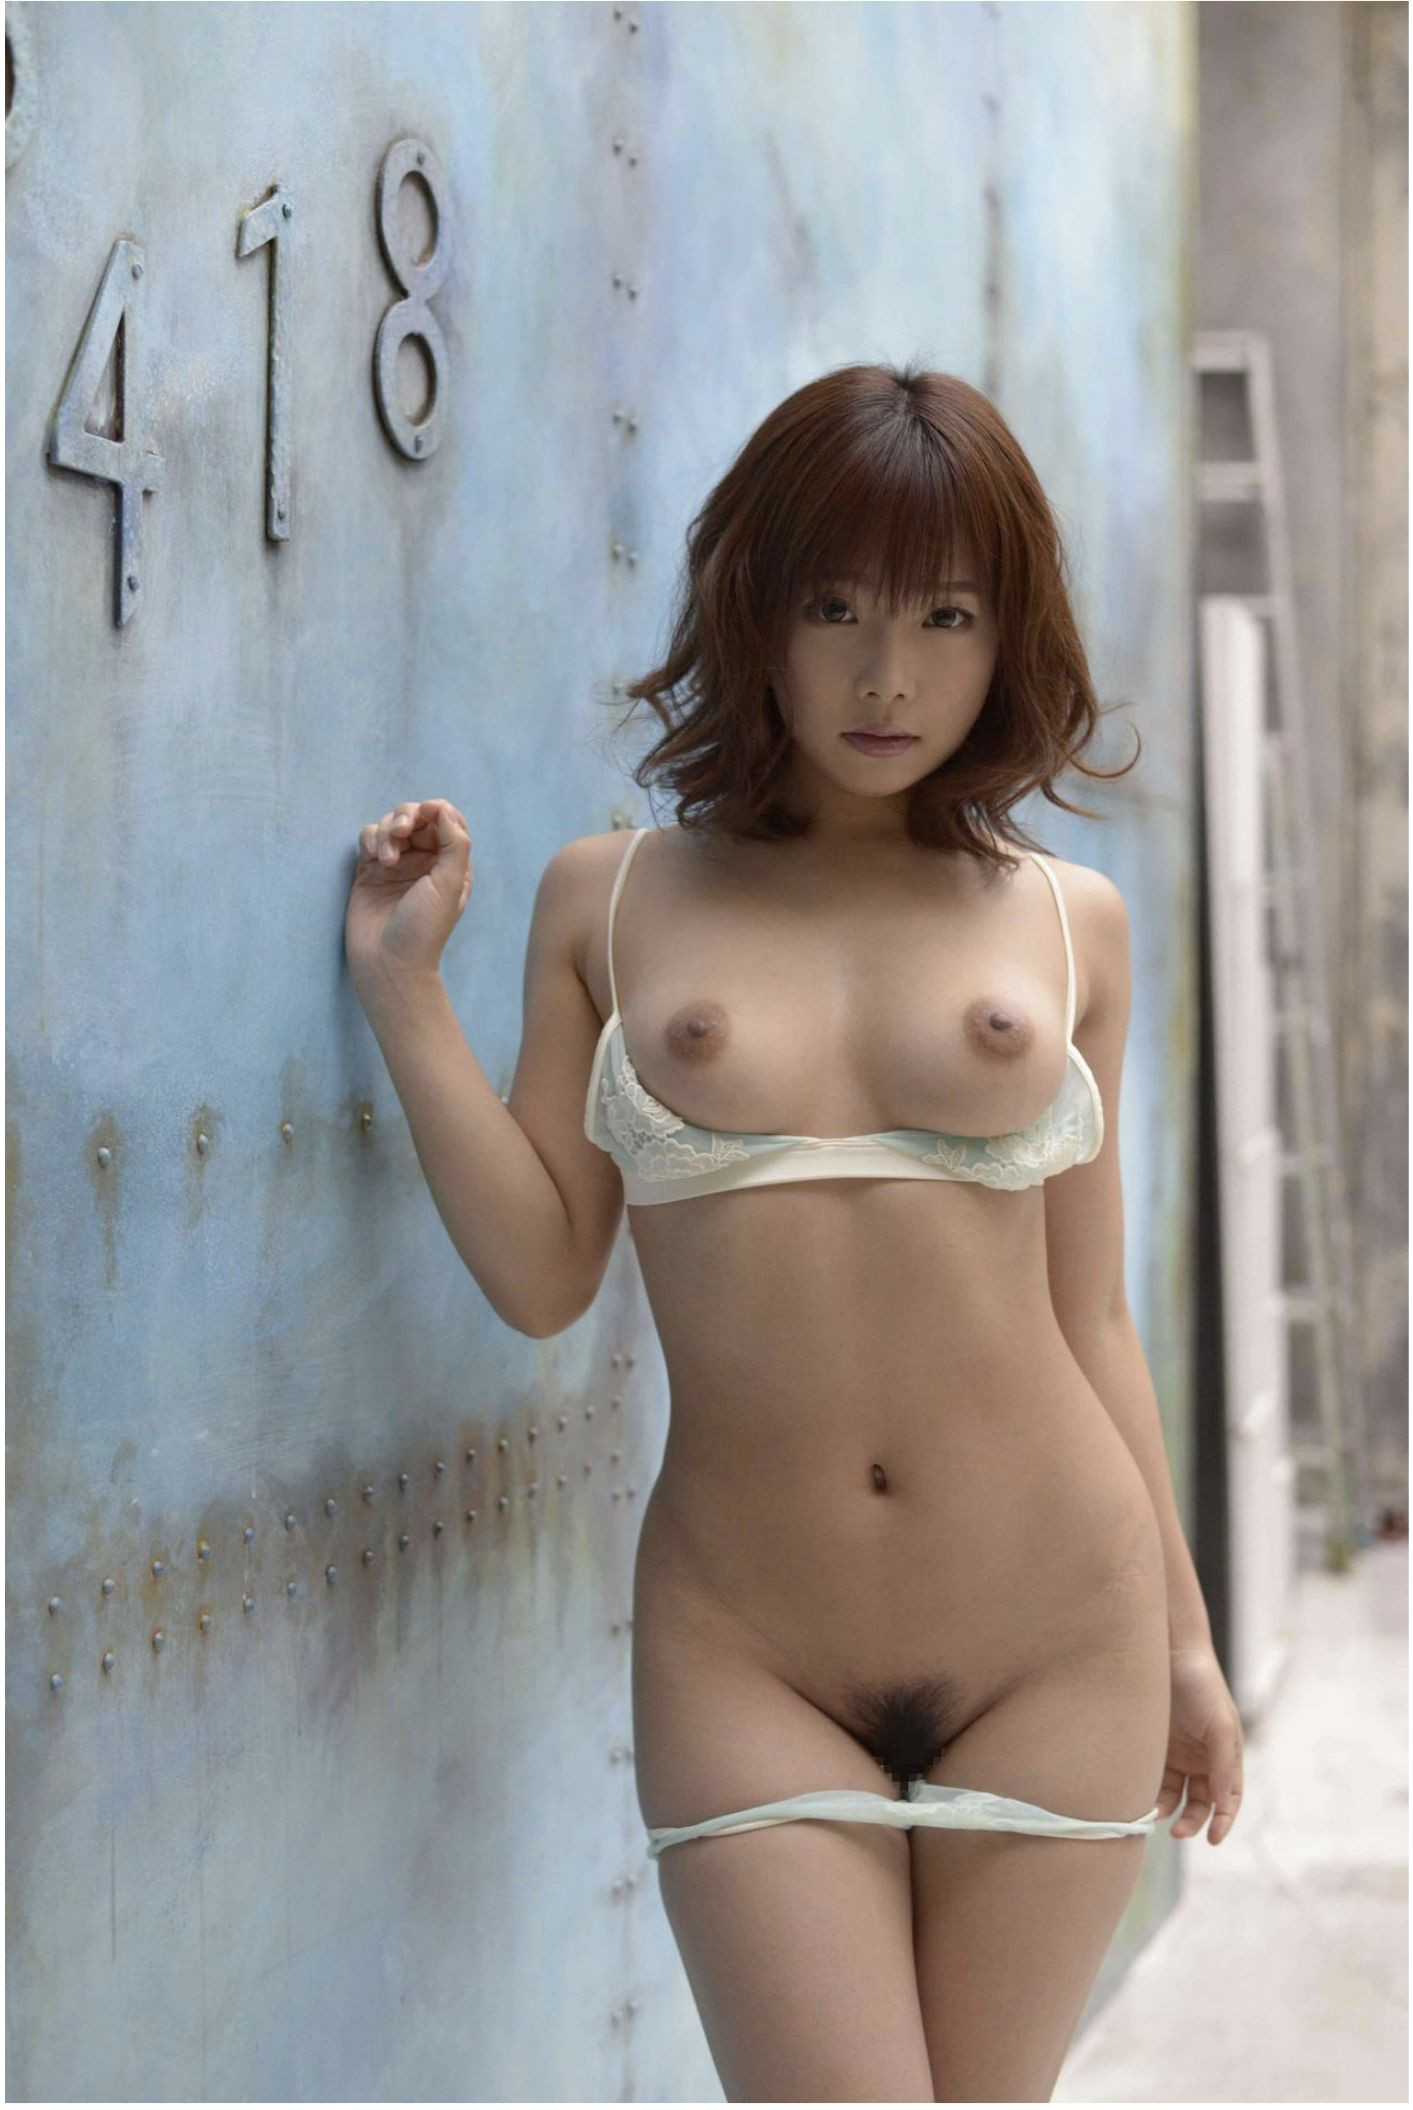 SOFT ON DEMAND GRAVURE COLLECTION 紗倉まな04 photo 080